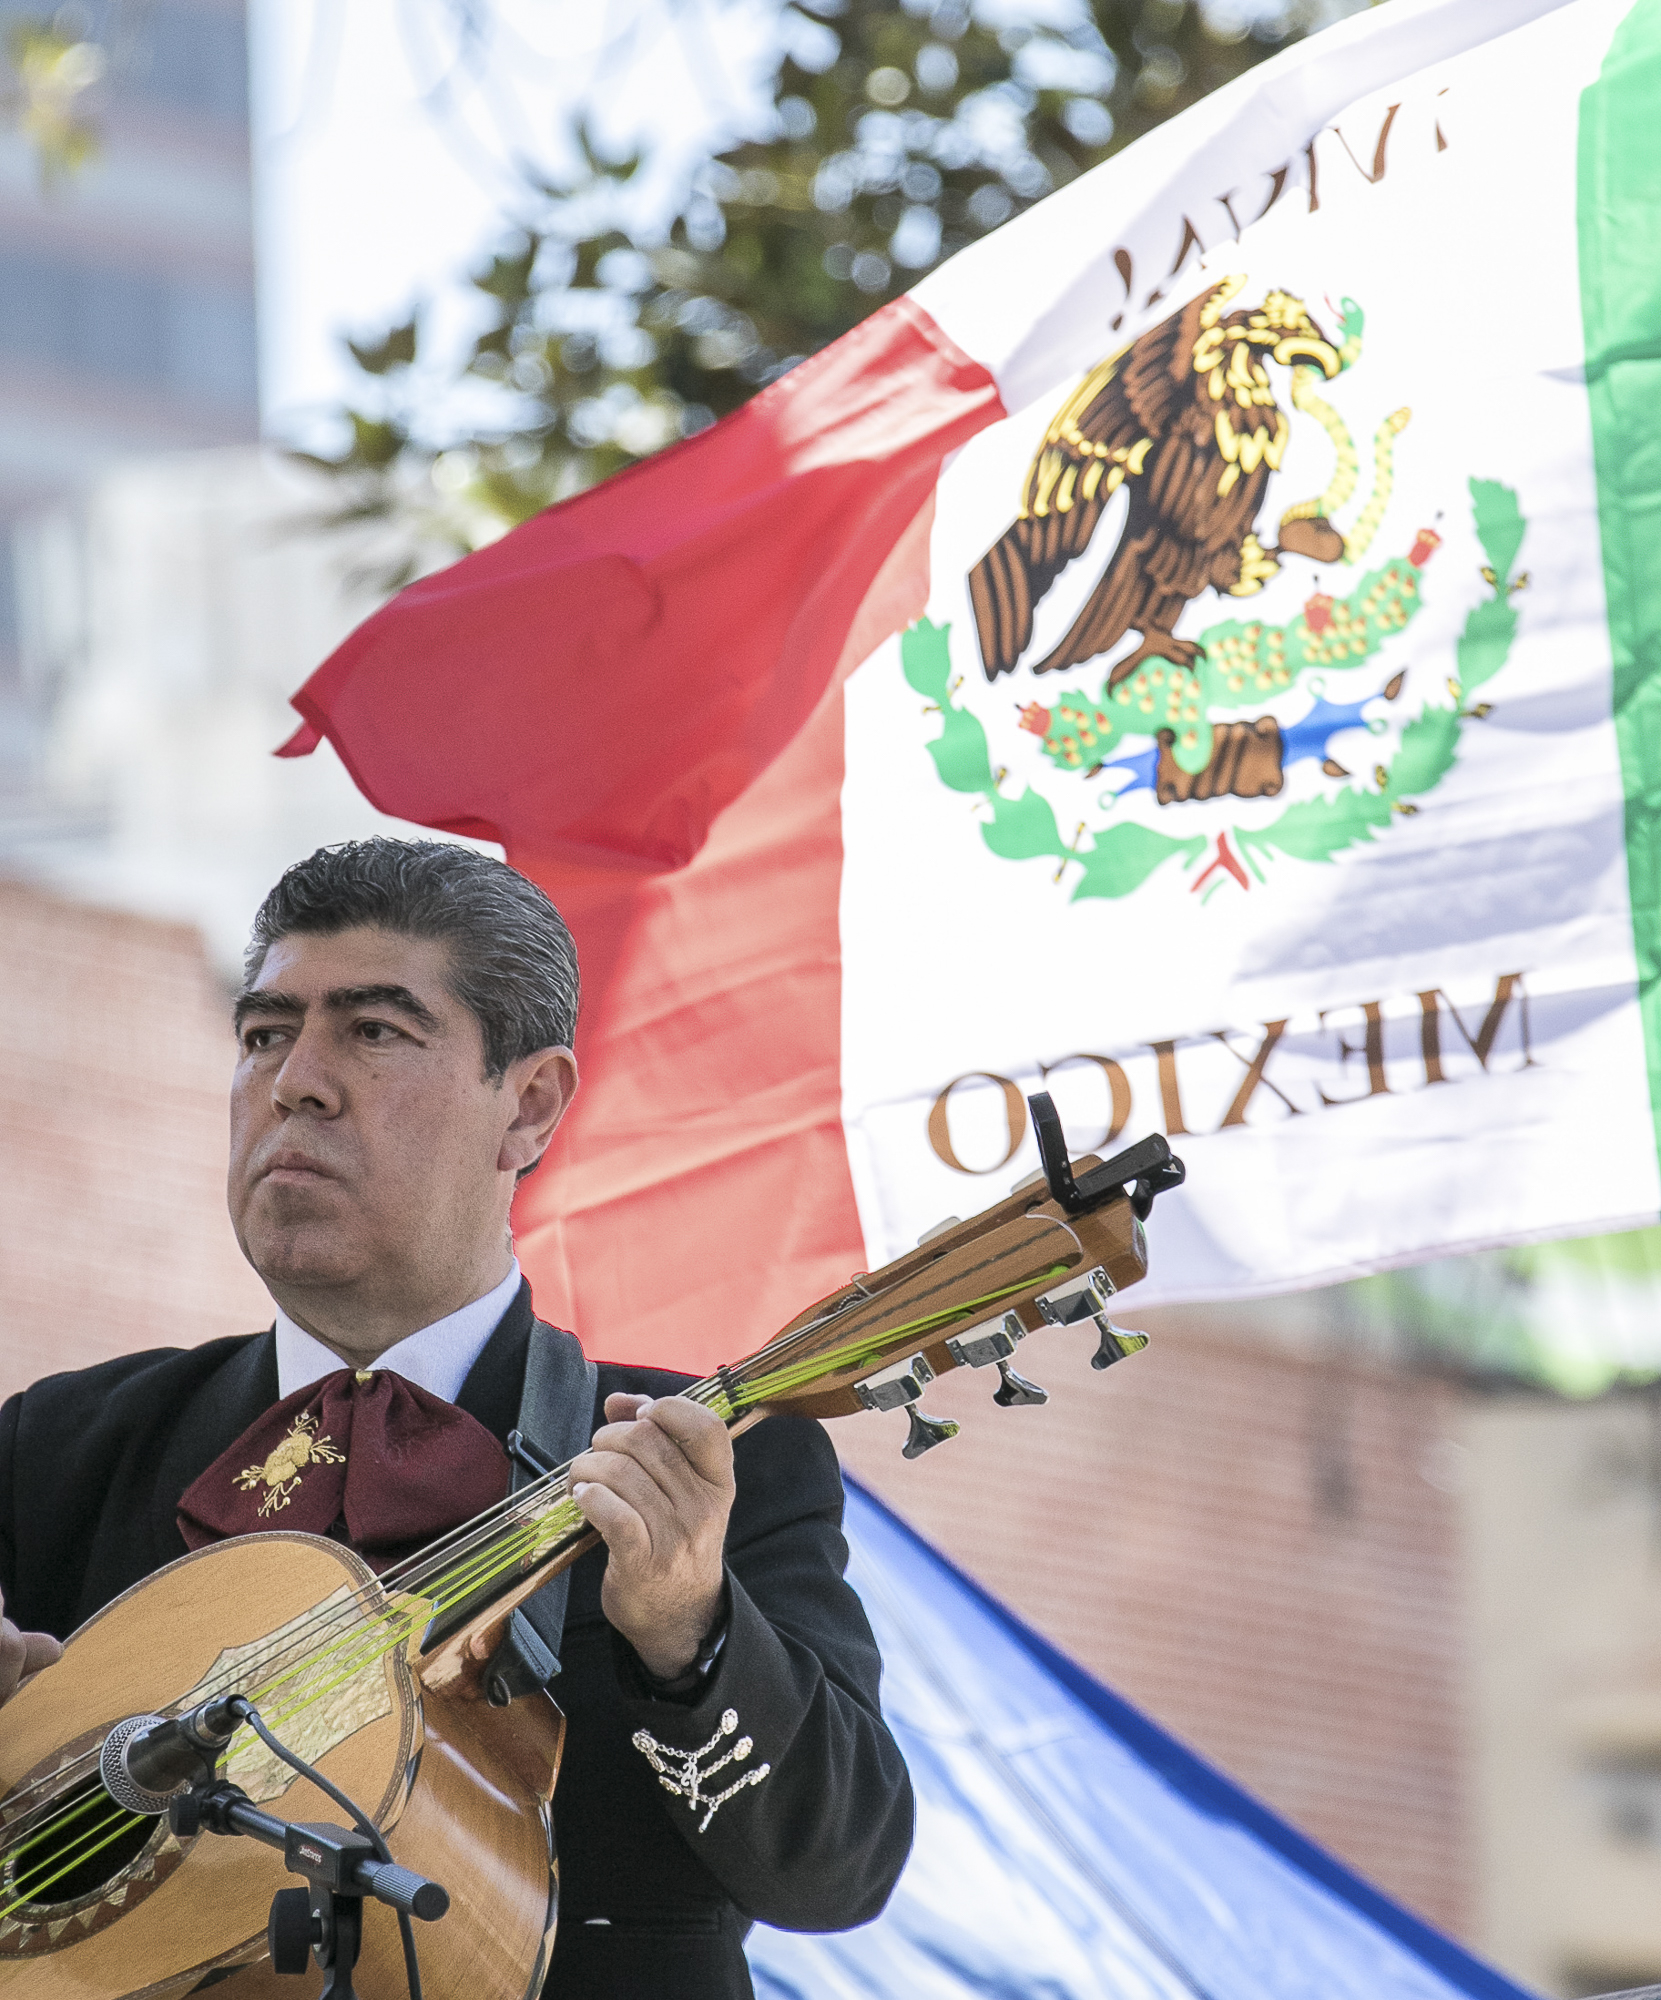 Celebrations for Cinco De Mayo as the mariachi band plays for the crowd at El Pueblo de Los Angeles Historic Monument on  Olvera Street on May 5th, 2018.(Downtown, Los Angeles, California, Saturday, May 5th, 2018.) (Ashutosh Bikram Singh/Corsair Photo)